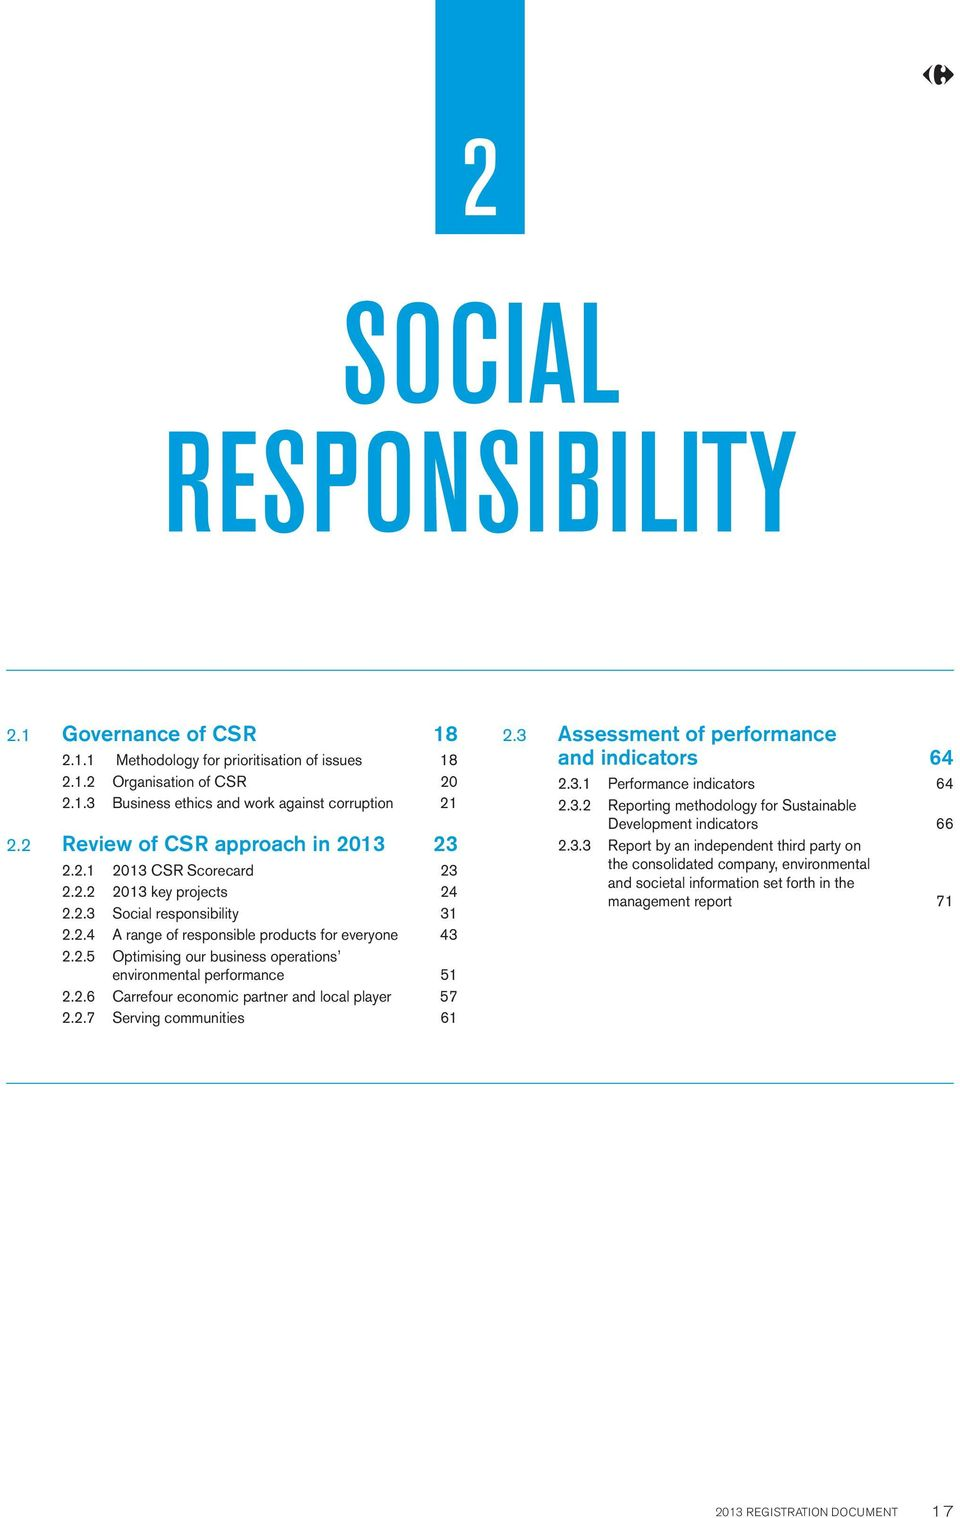 2.6 Carrefour economic partner and local player 57 2.2.7 Serving communities 61 2.3 Assessment of performance and indicators 64 2.3.1 Performance indicators 64 2.3.2 Reporting methodology for Sustainable Development indicators 66 2.